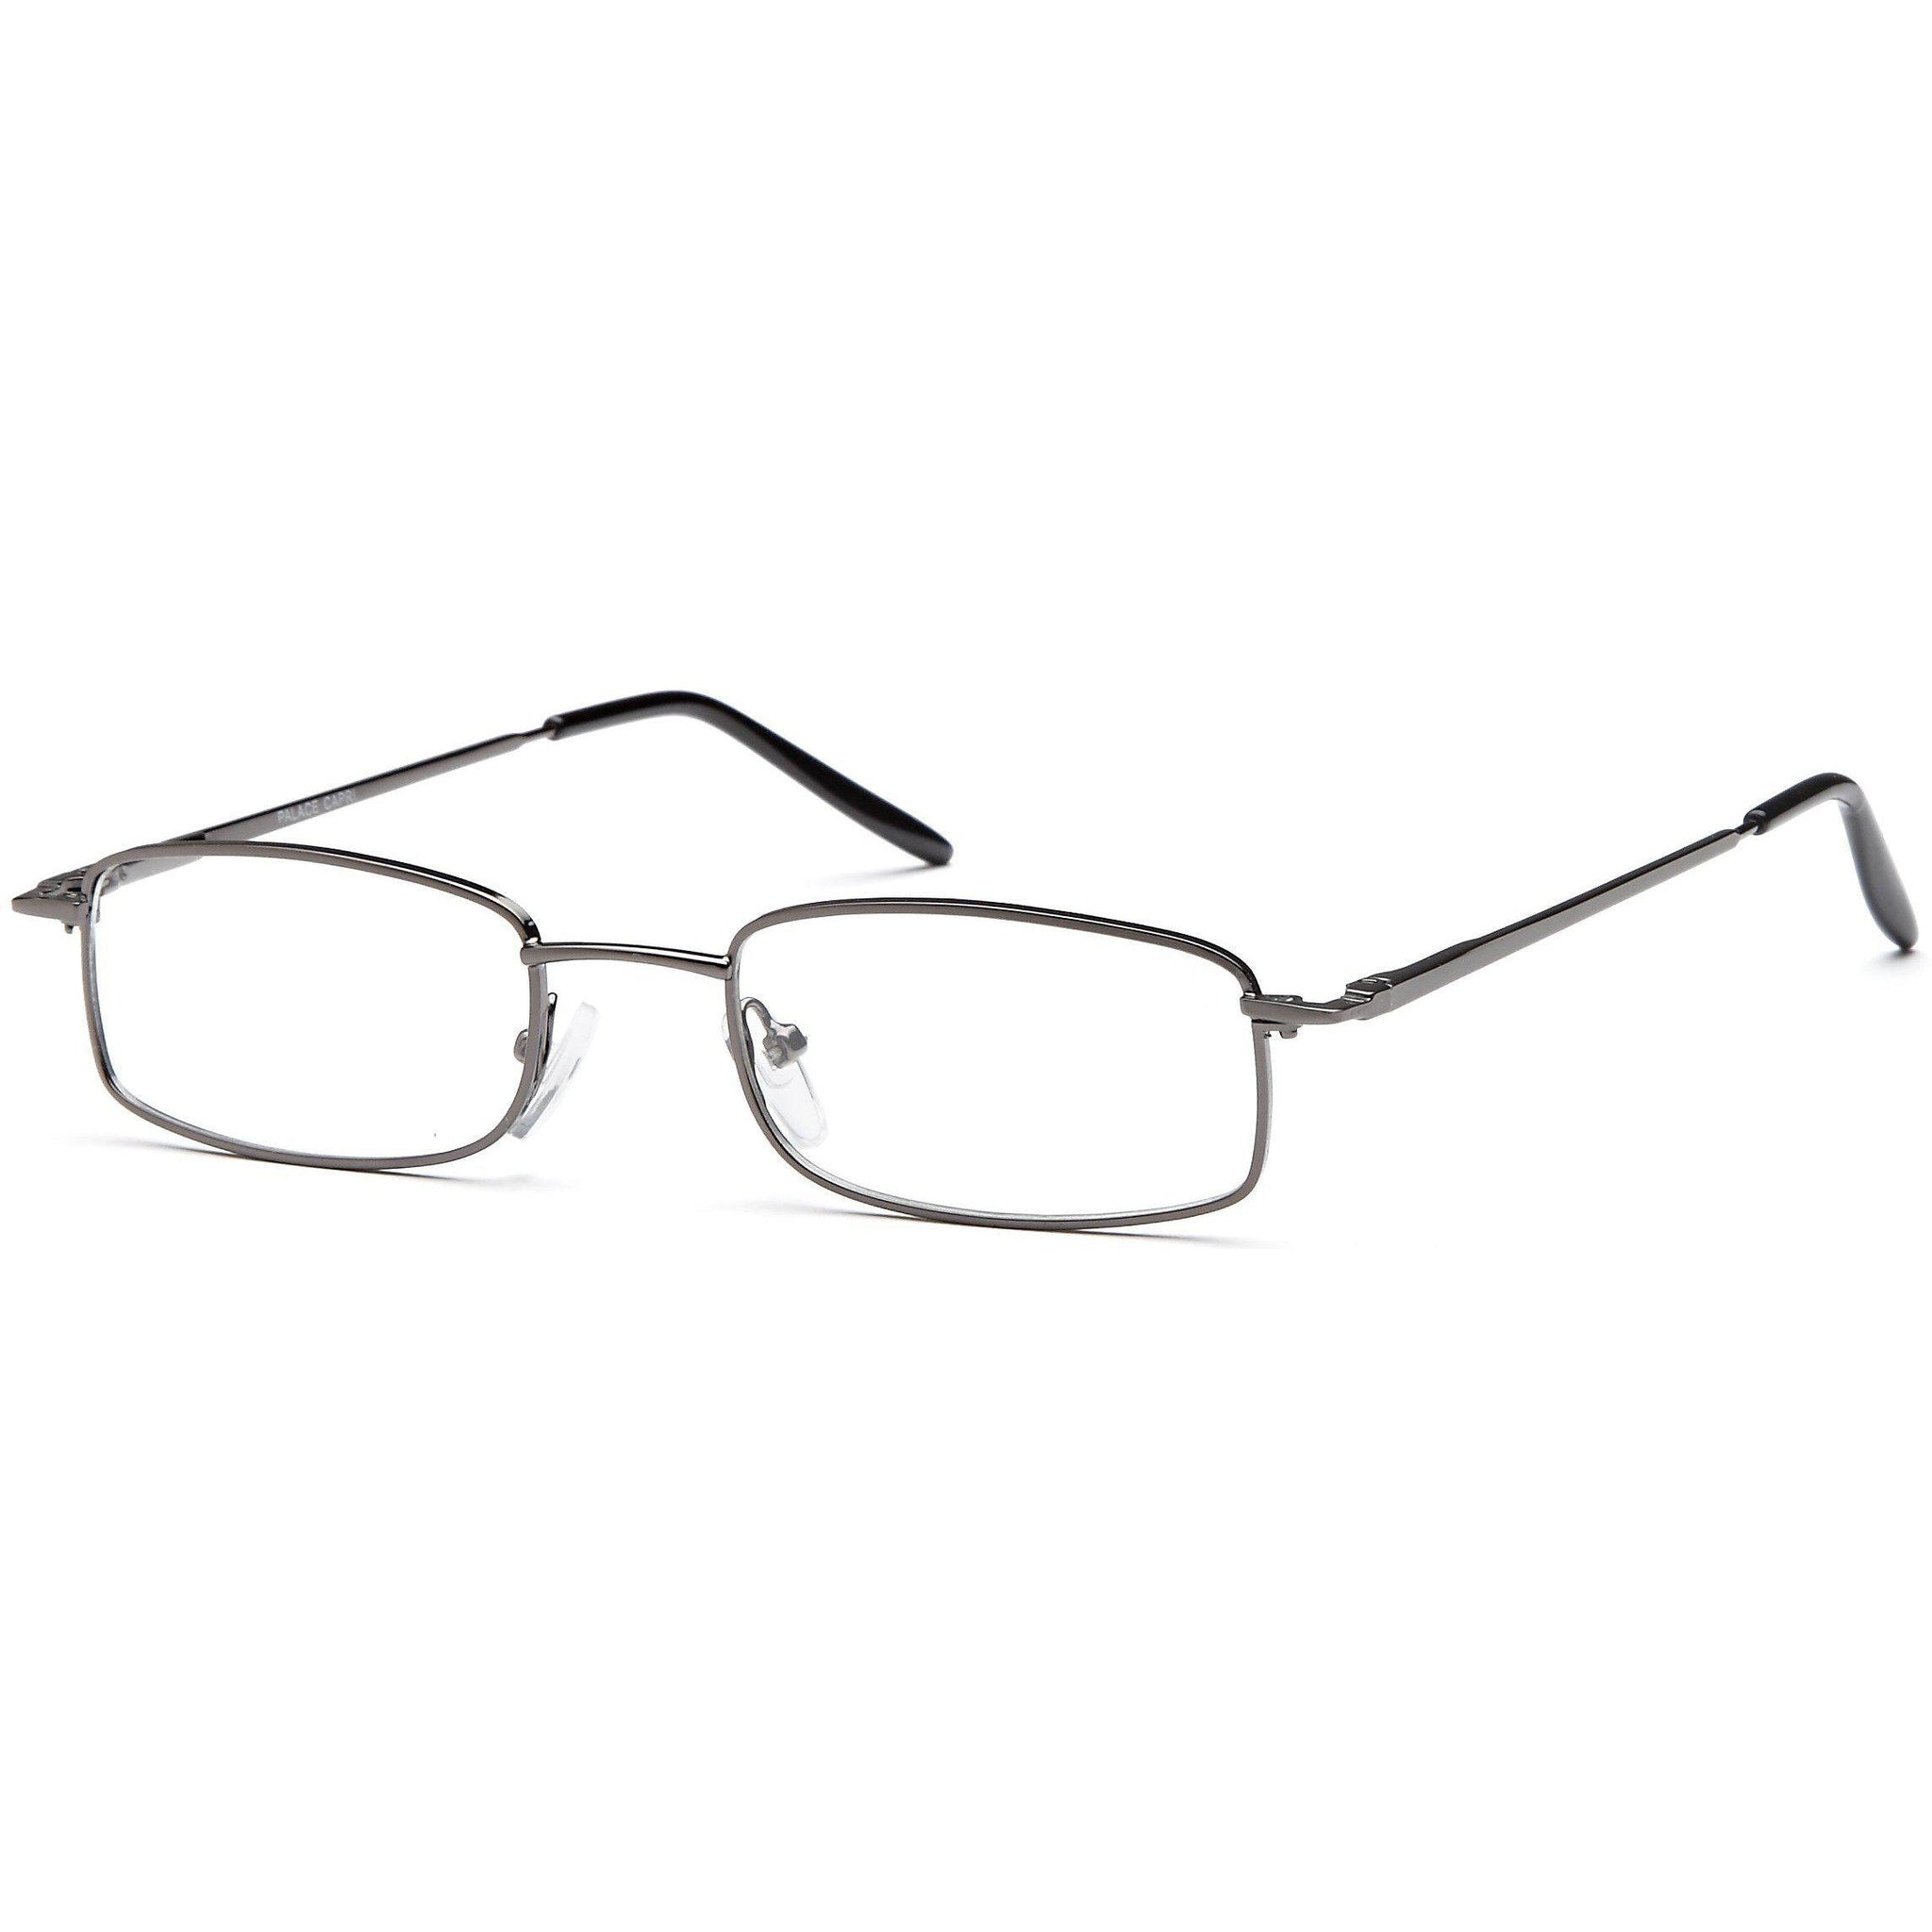 Classics Prescription Glasses PALACE Frames